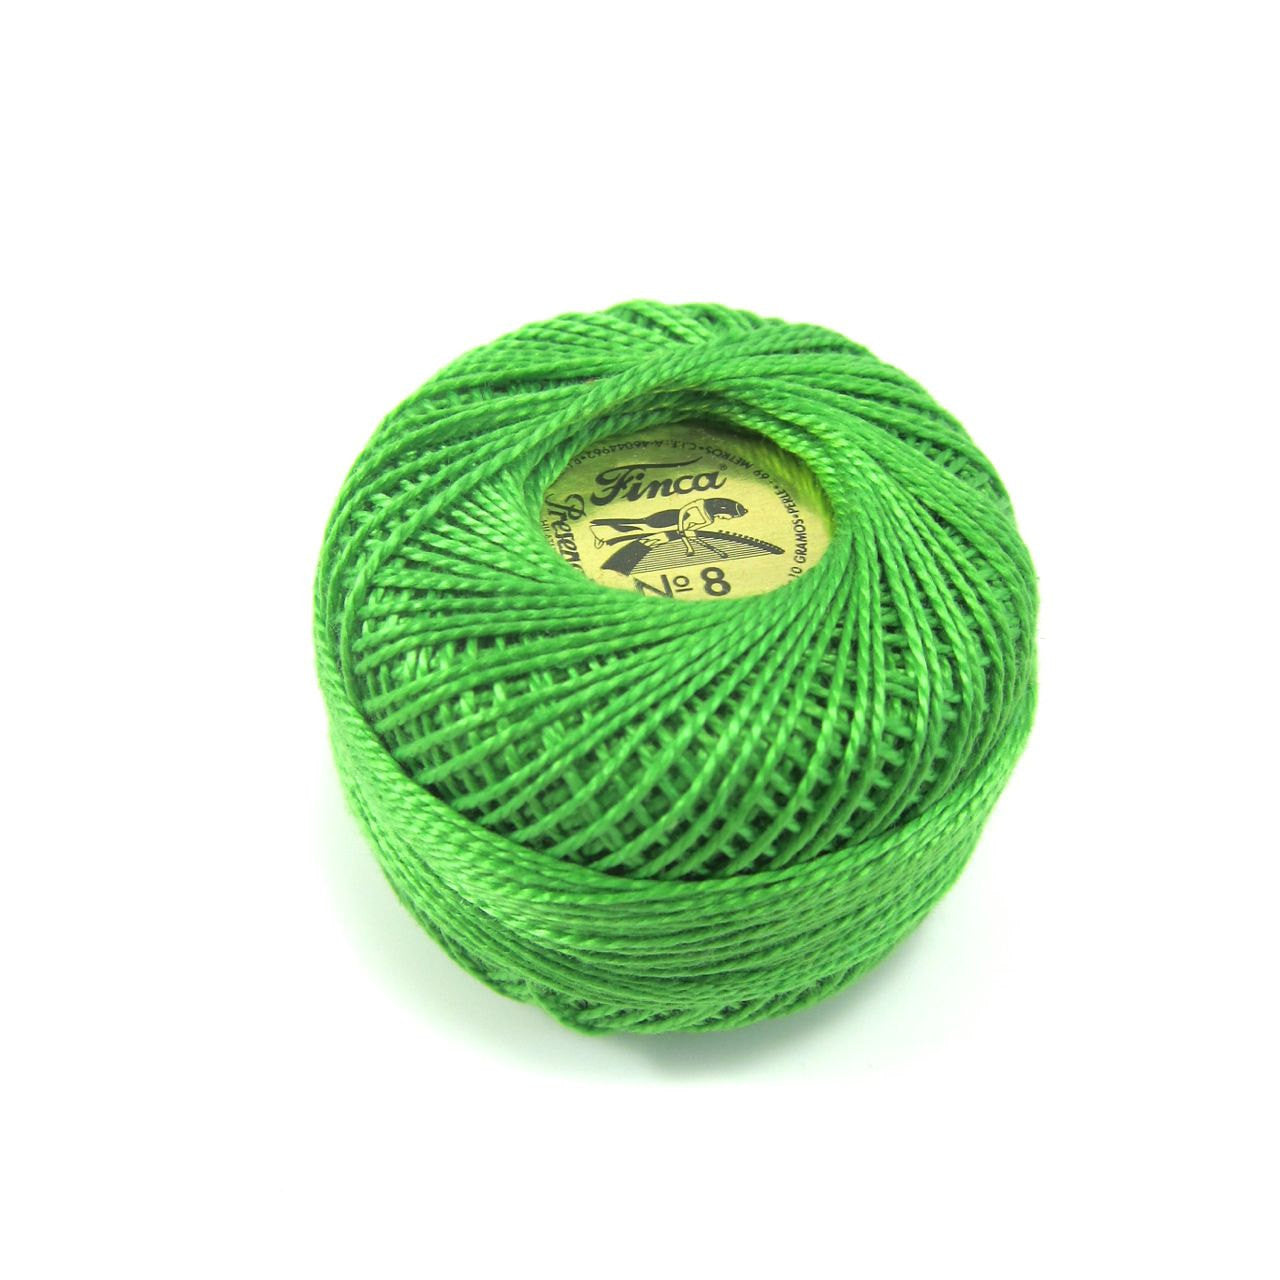 Kelly Green Finca Pearl Cotton Thread (4643) Perle Cotton - Snuggly Monkey